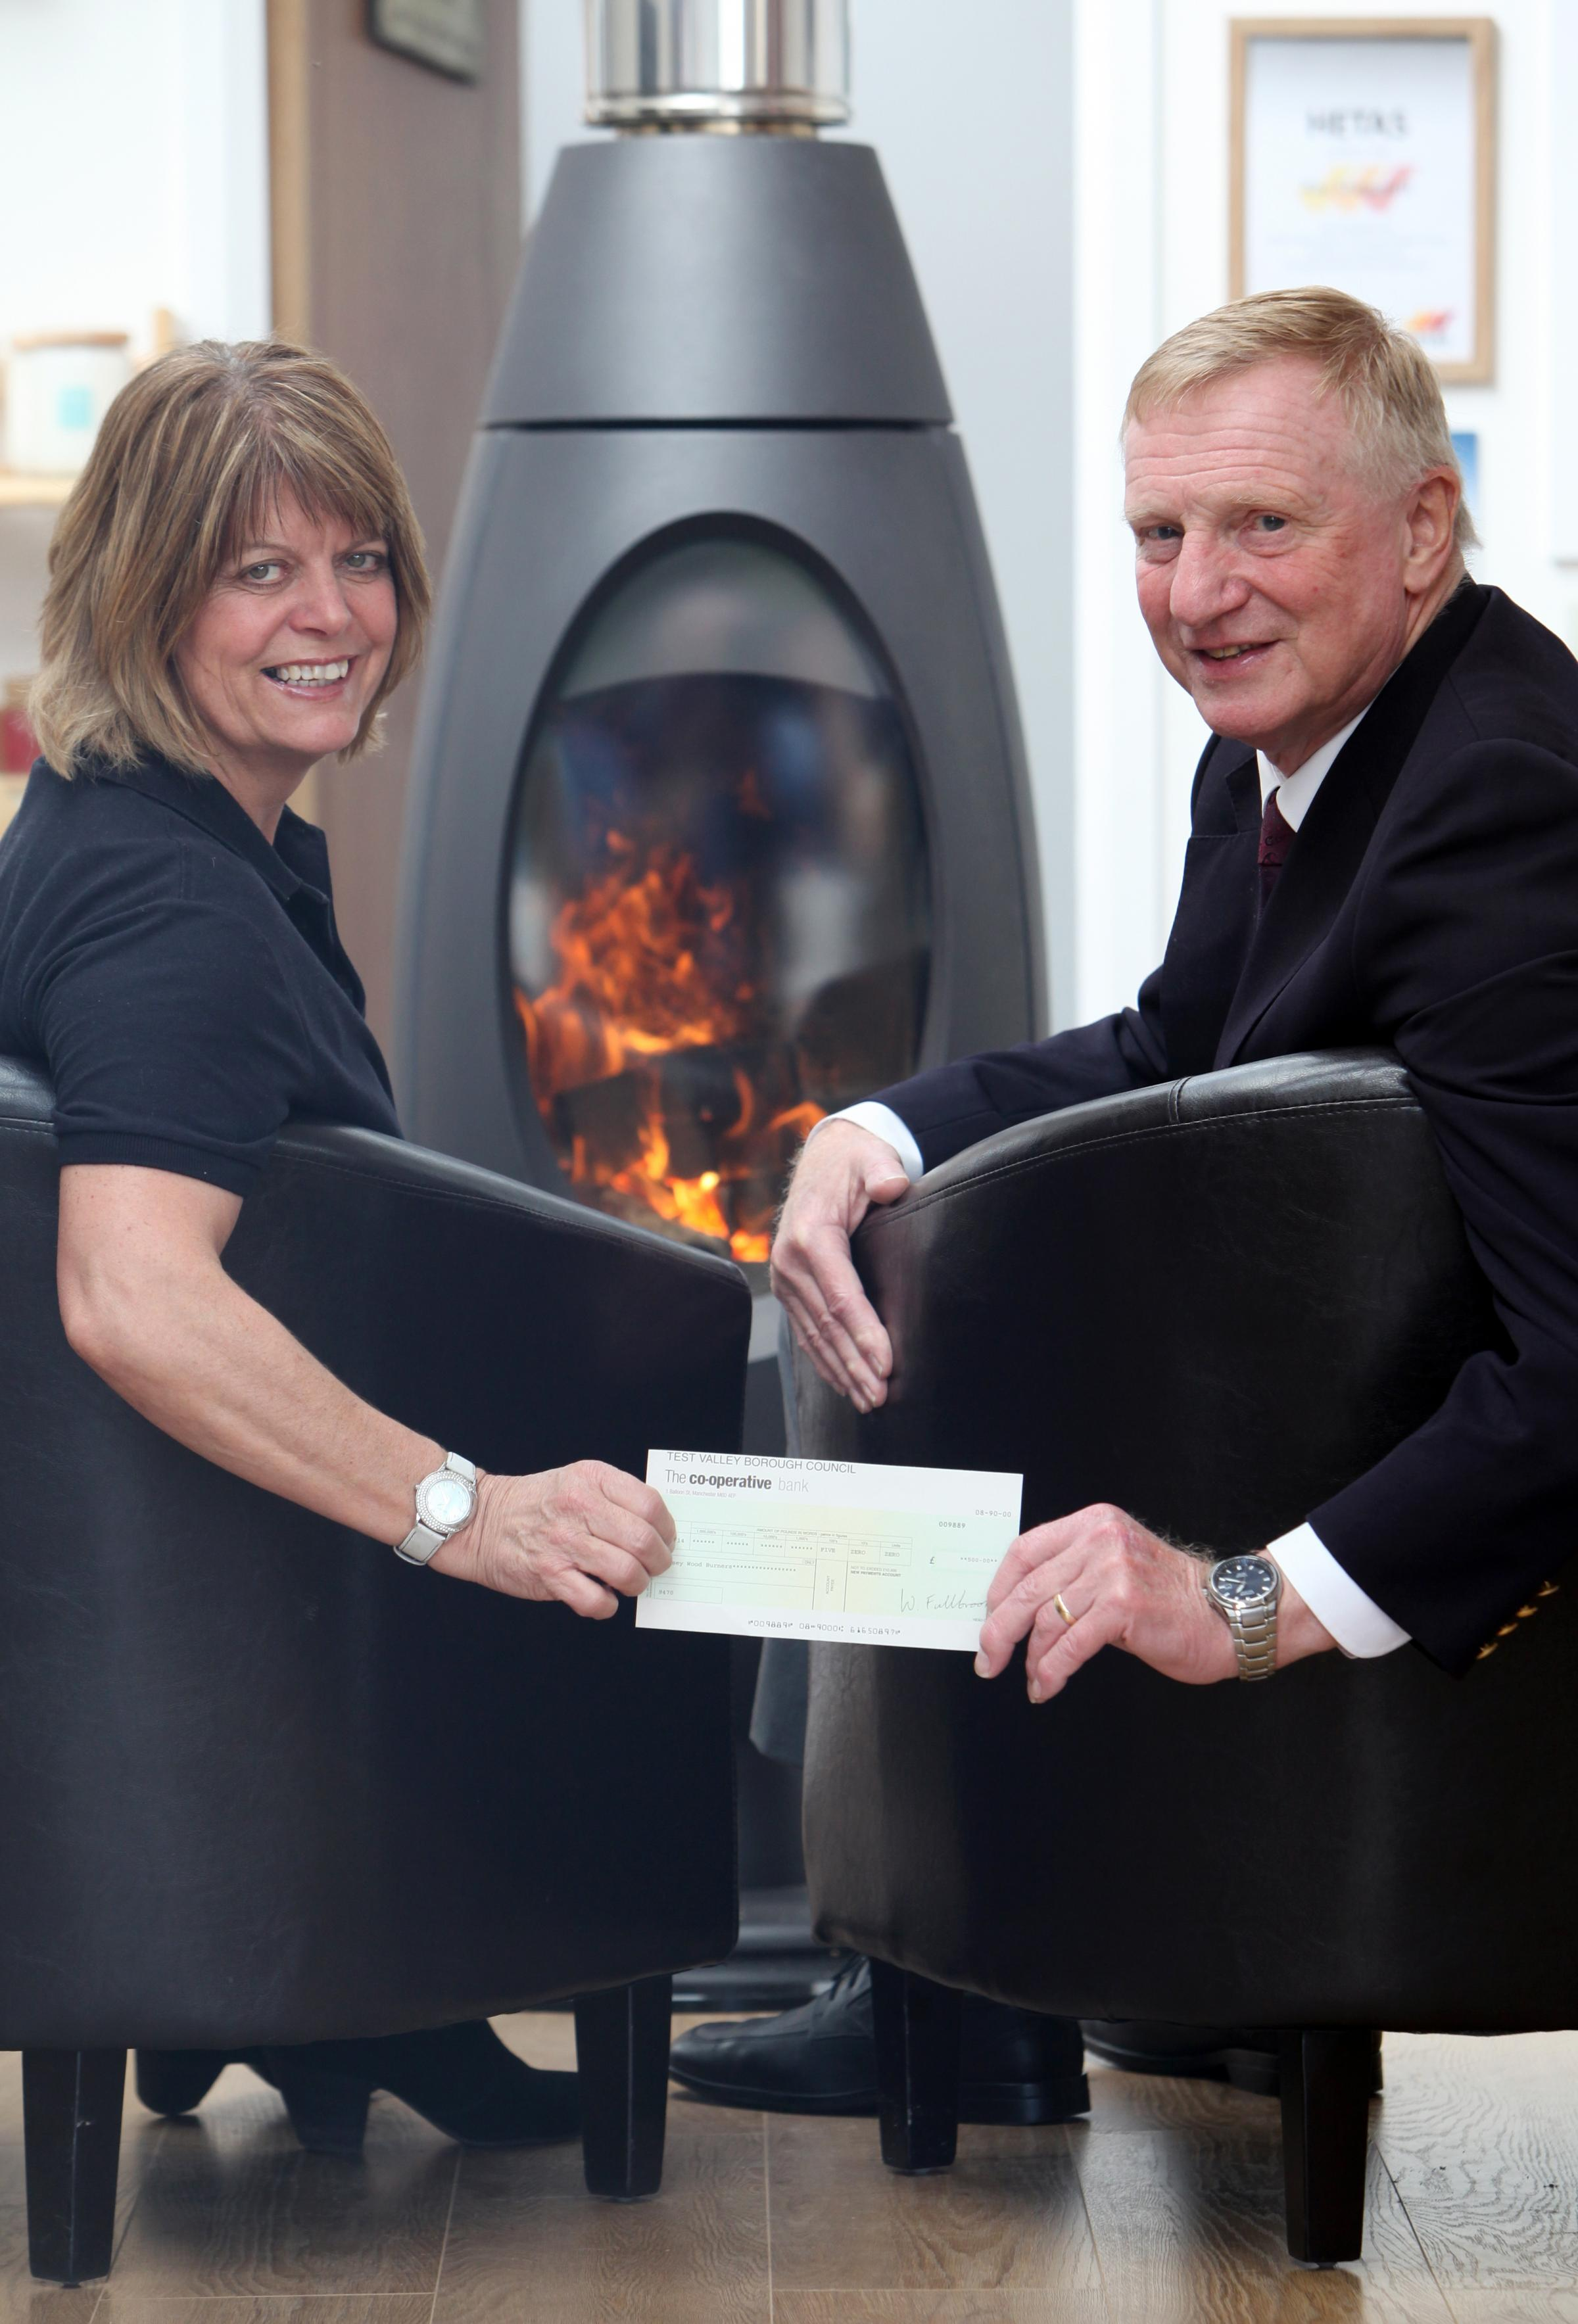 Test Valley councillor Tony Ward presents Angela Coleman with a cheque for £500 for her new woodburner business